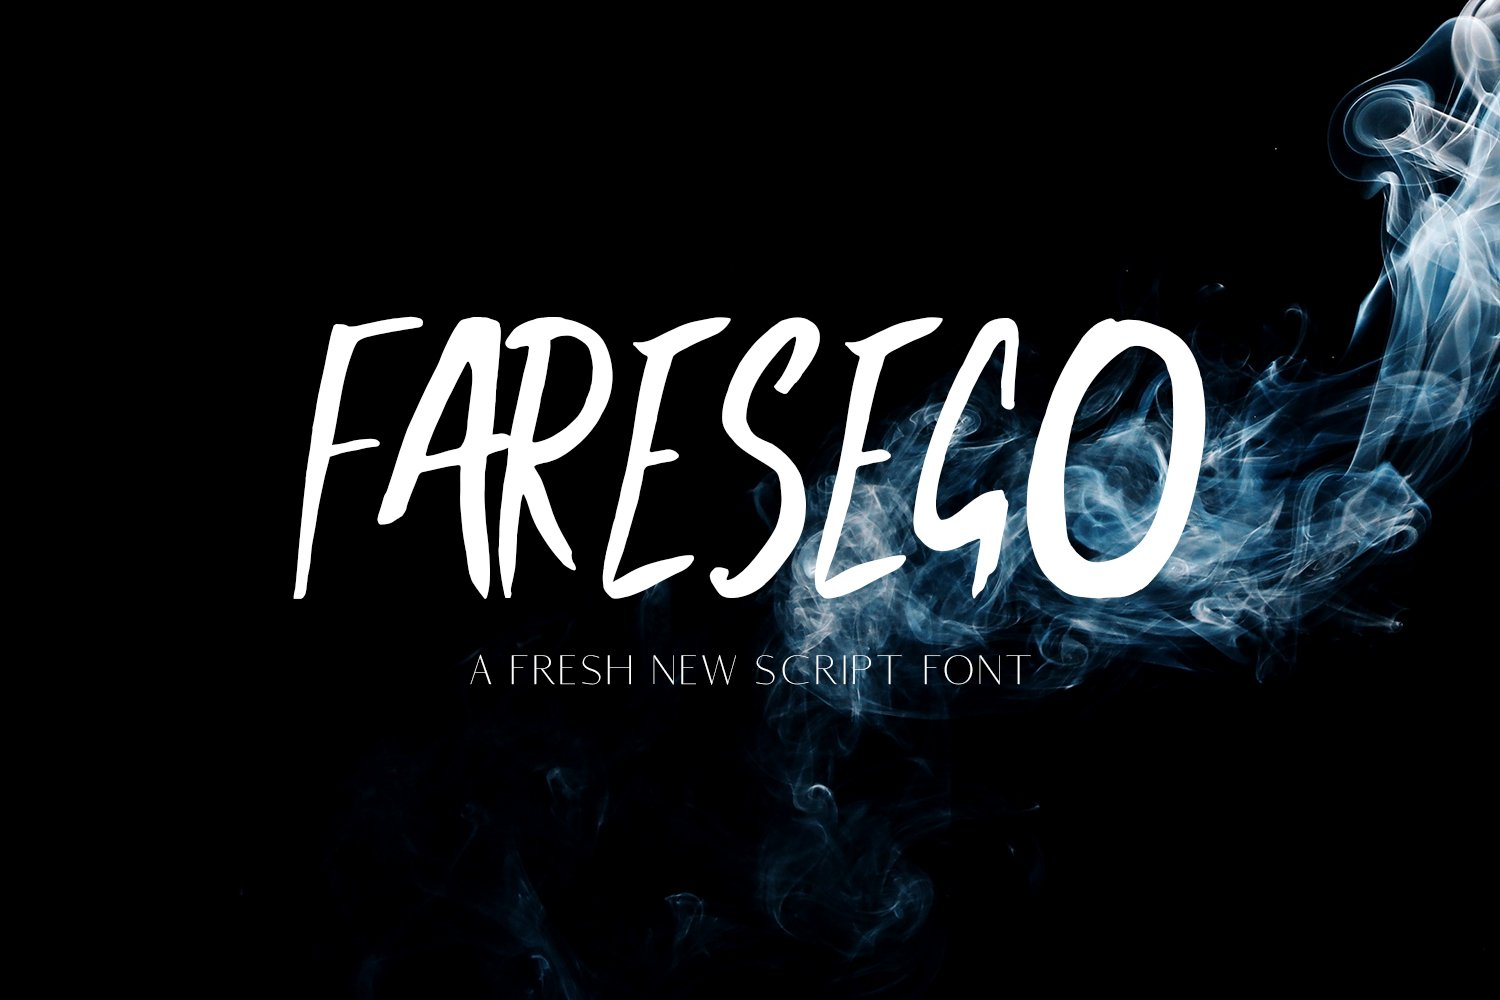 Faresego Script Typeface example image 1